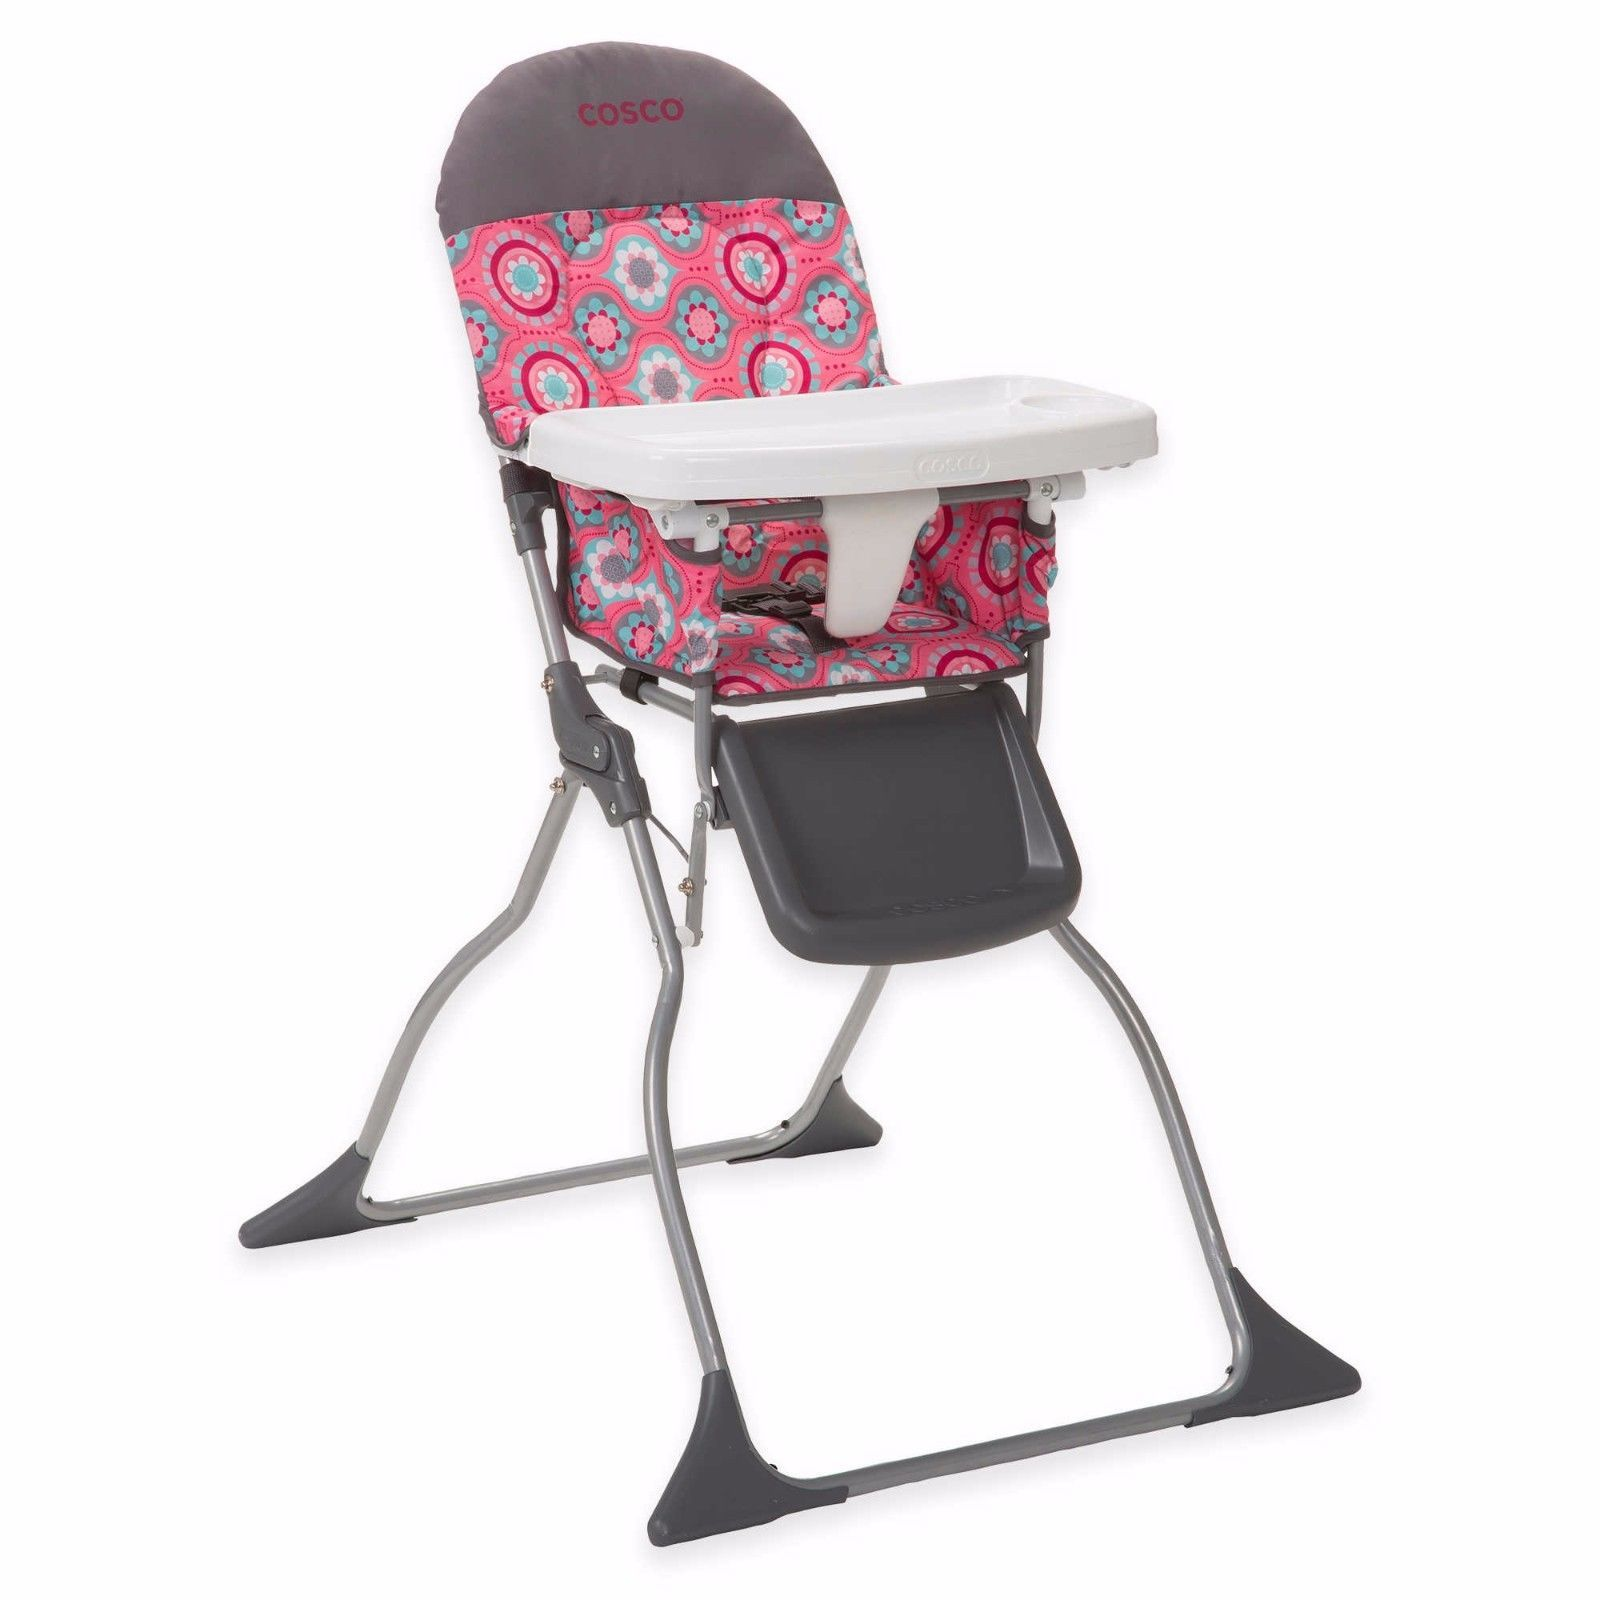 Graco high chair 4 in 1 baby high chair feeding table adjustable  position tray infant